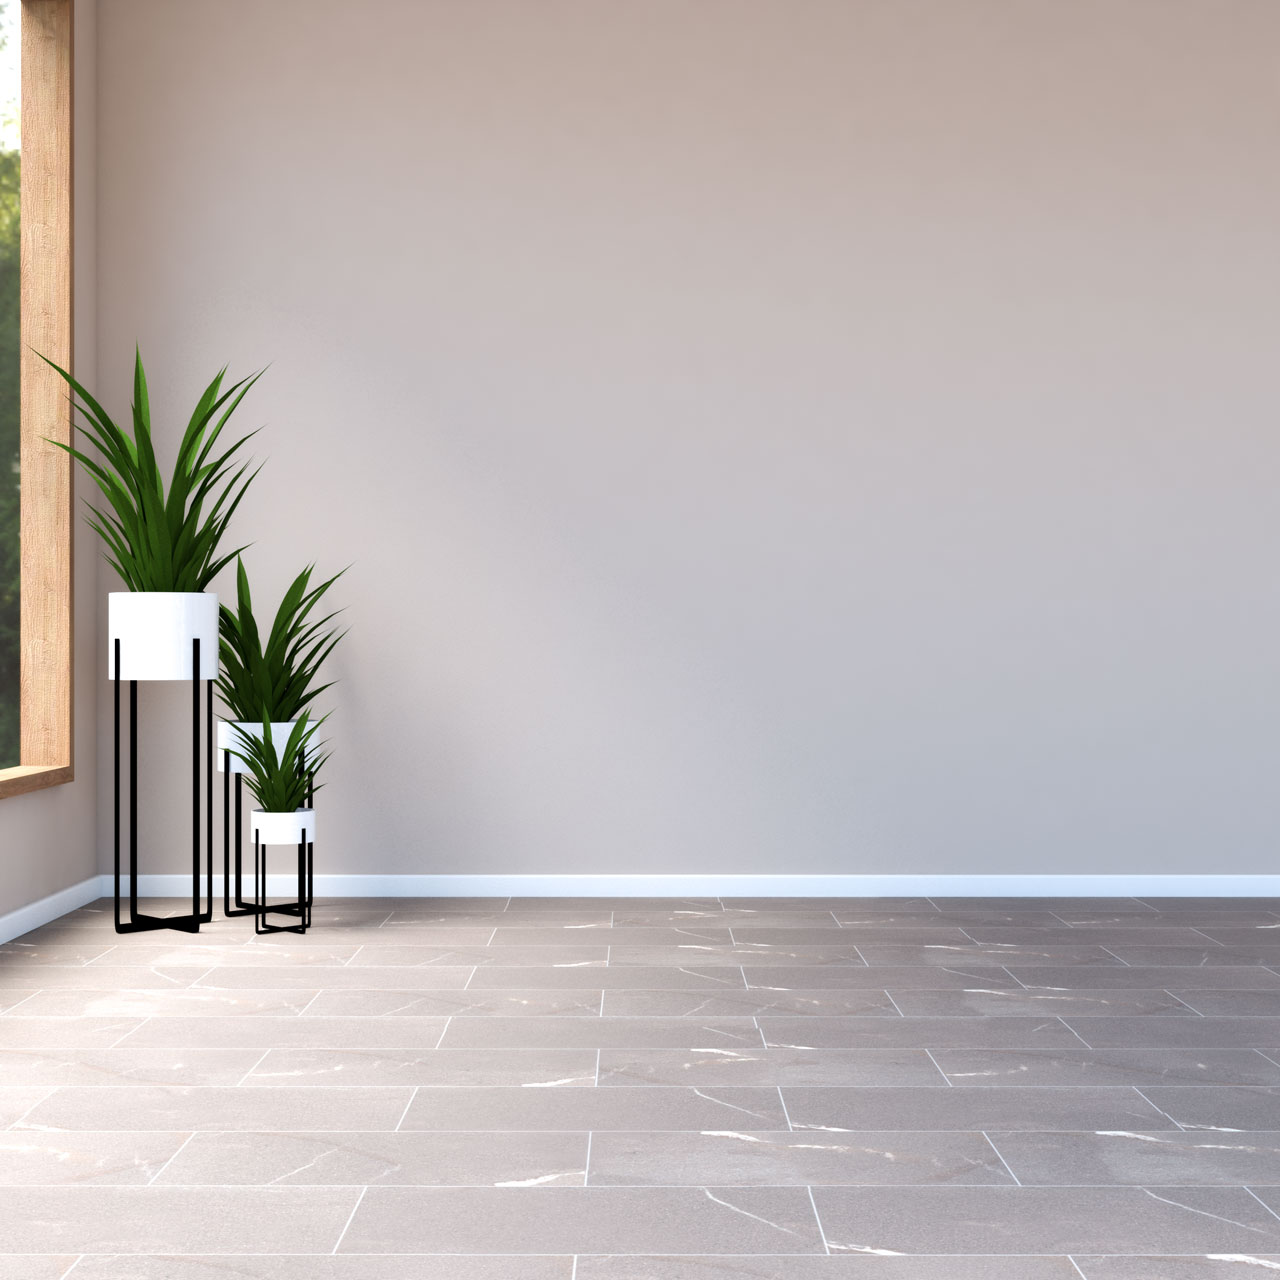 Tan walls with brown tile flooring